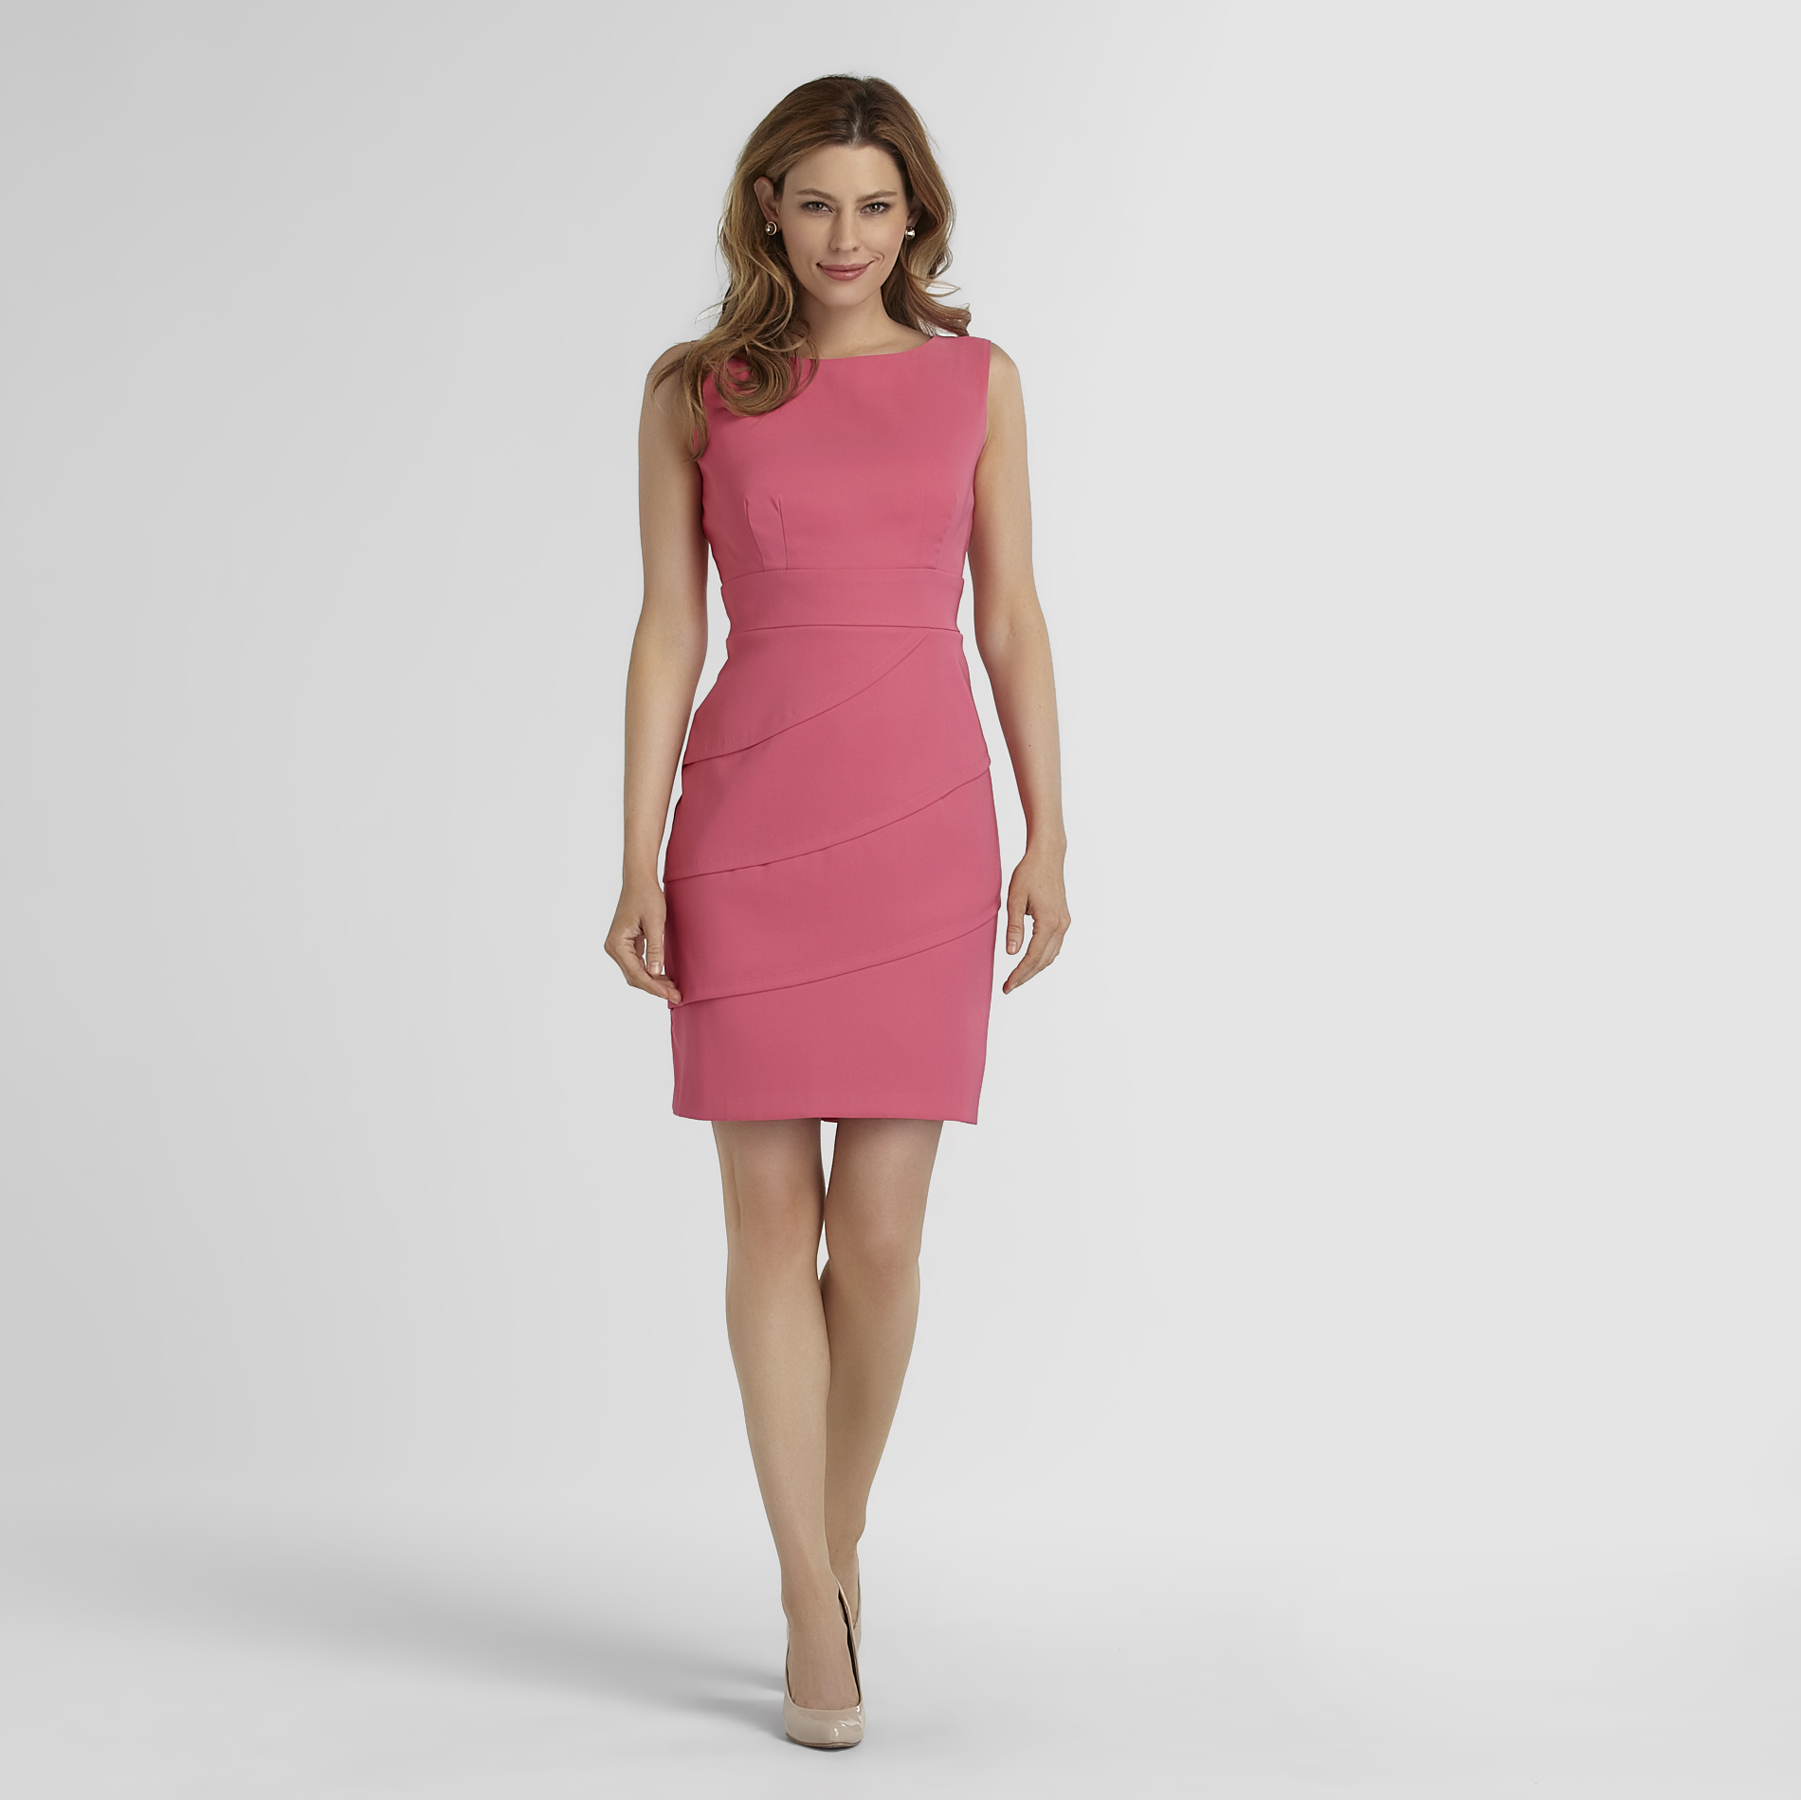 Women's Tiered Dress at Kmart.com